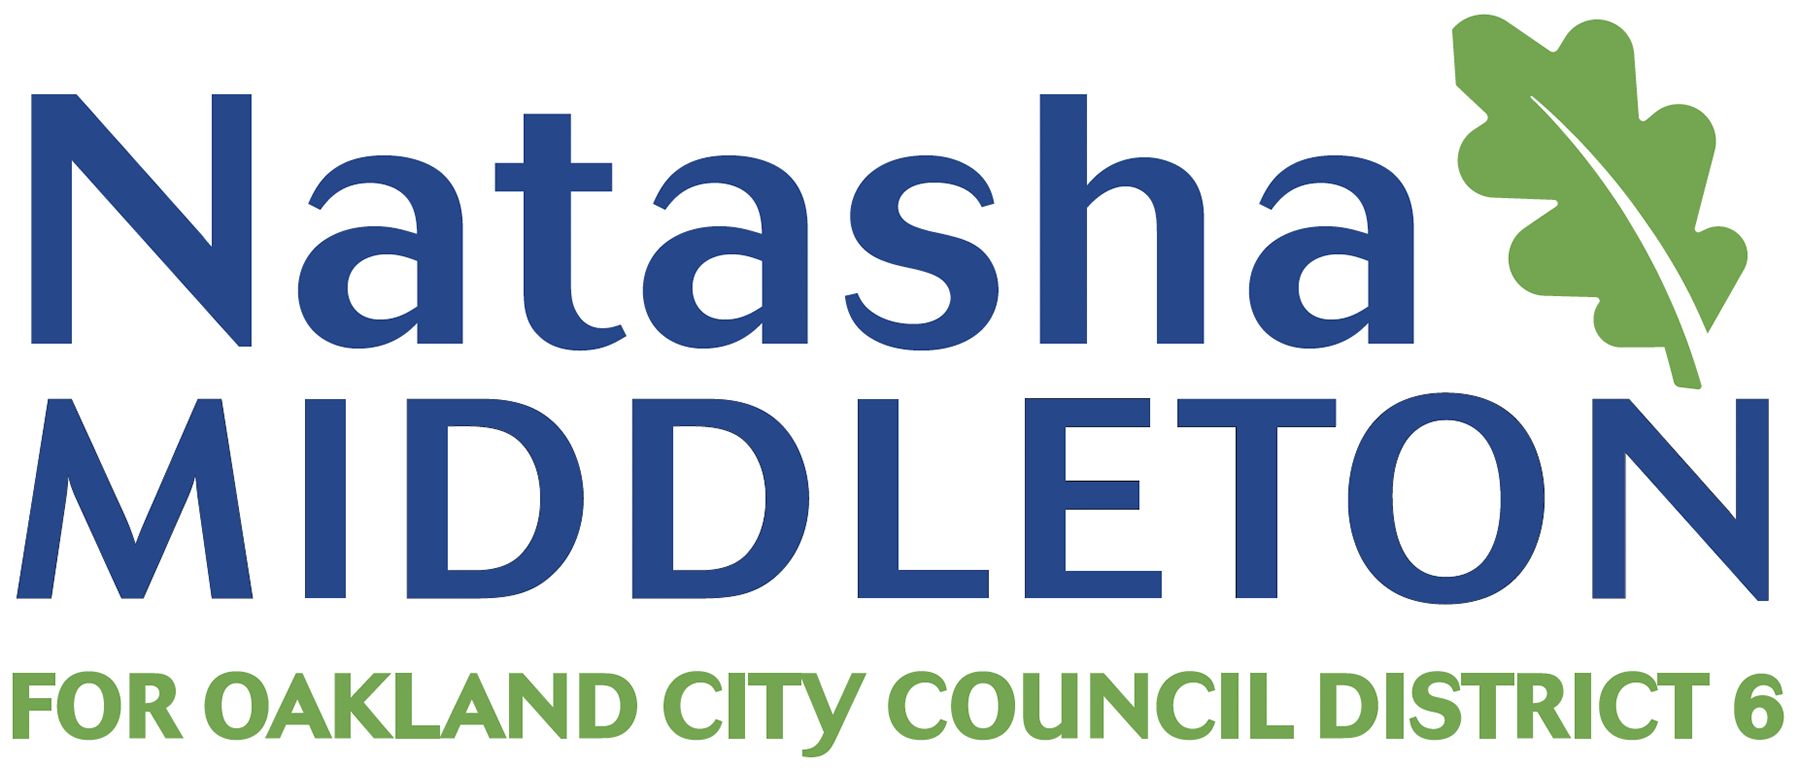 Natasha Middleton  for Oakland City Council - District 6